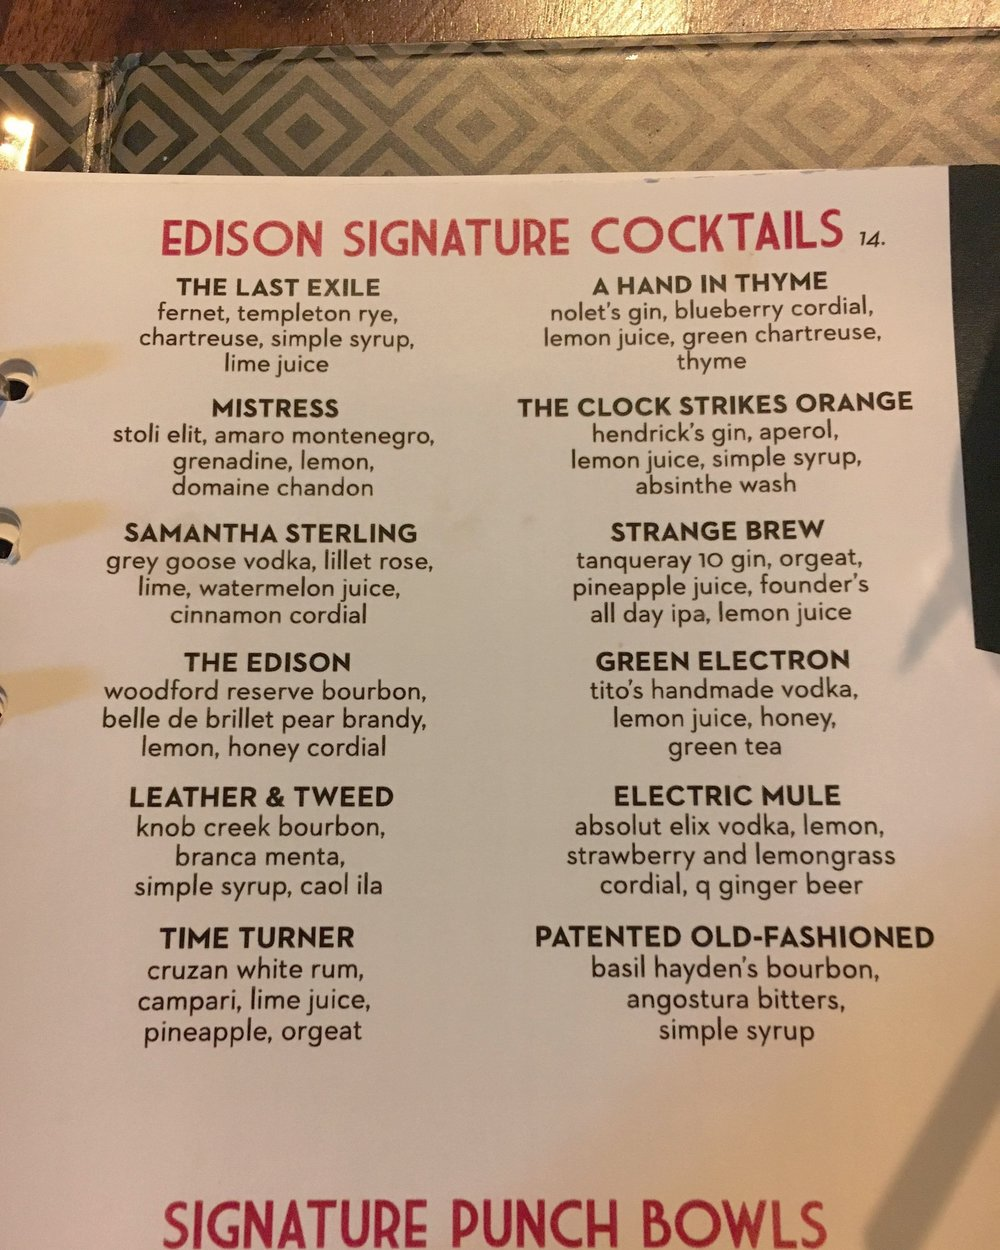 A list of signature cocktails.